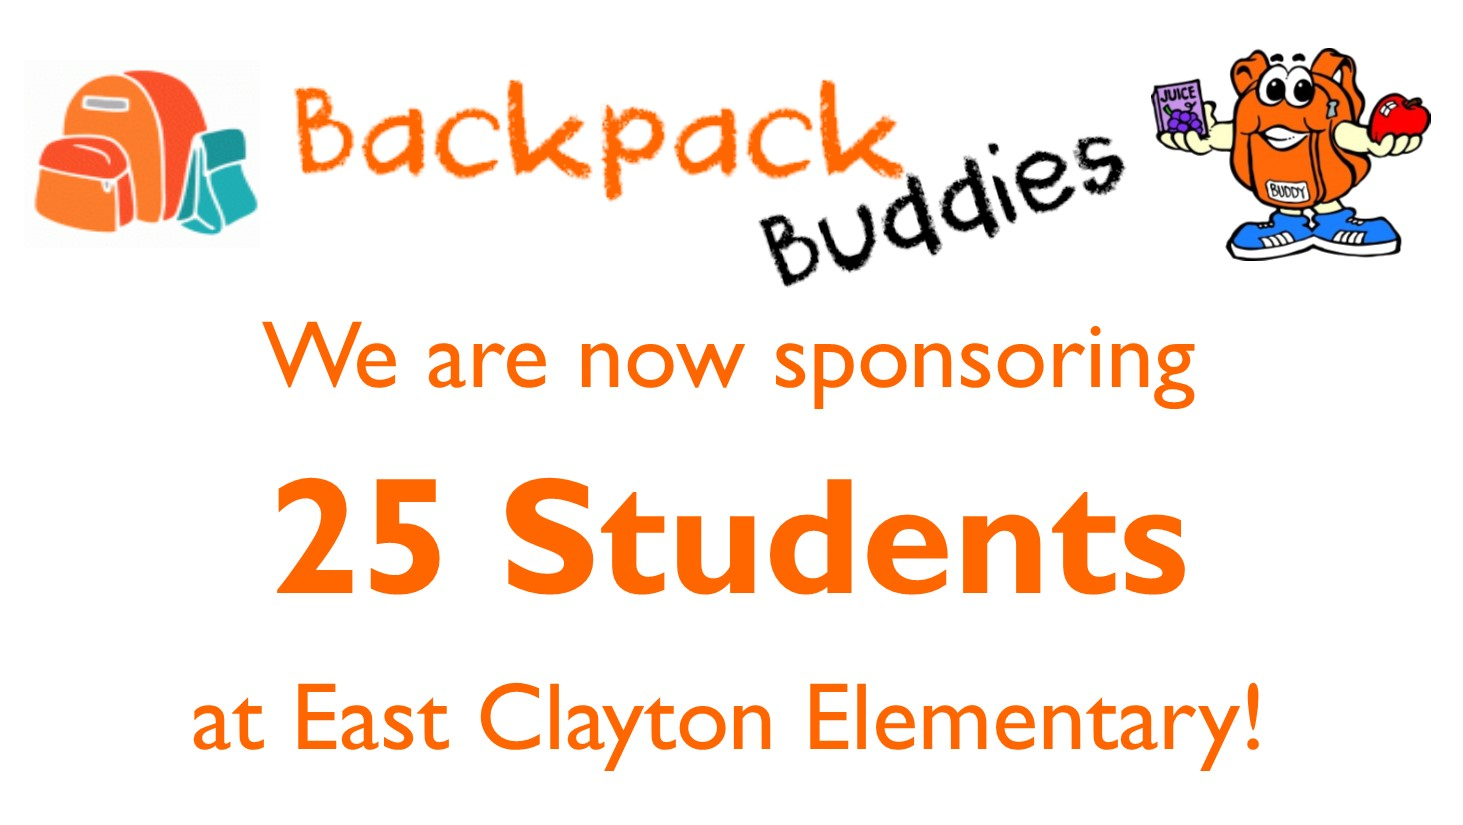 backpack buddies news